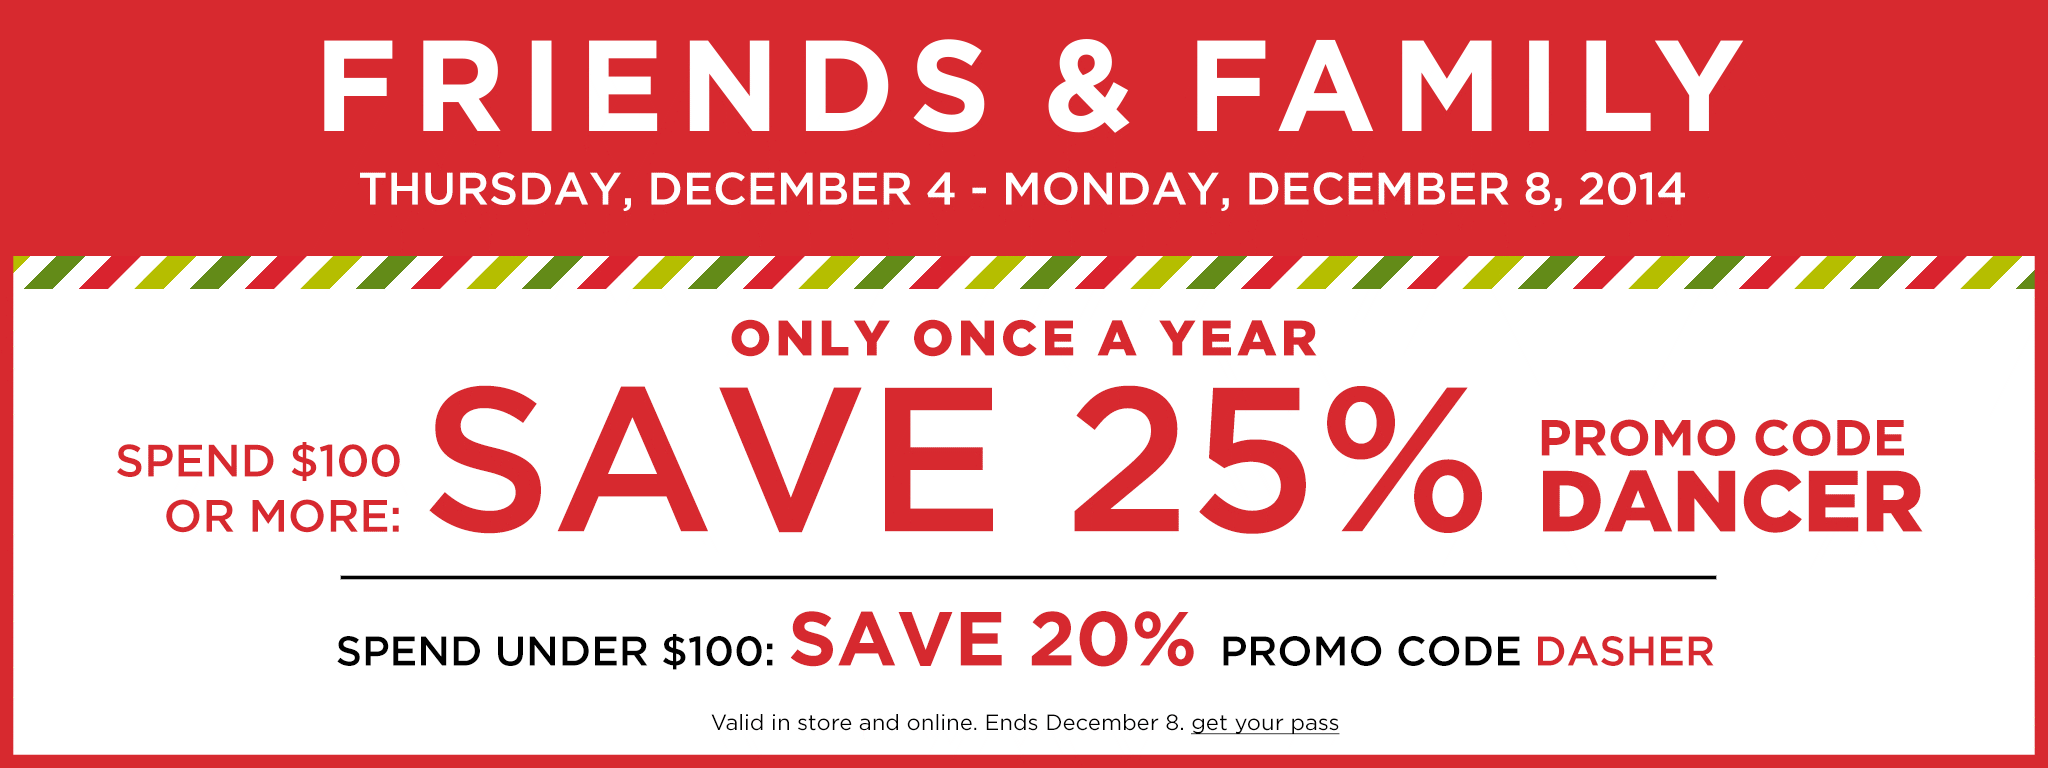 Kohls friends and family sale 25% off coupon code